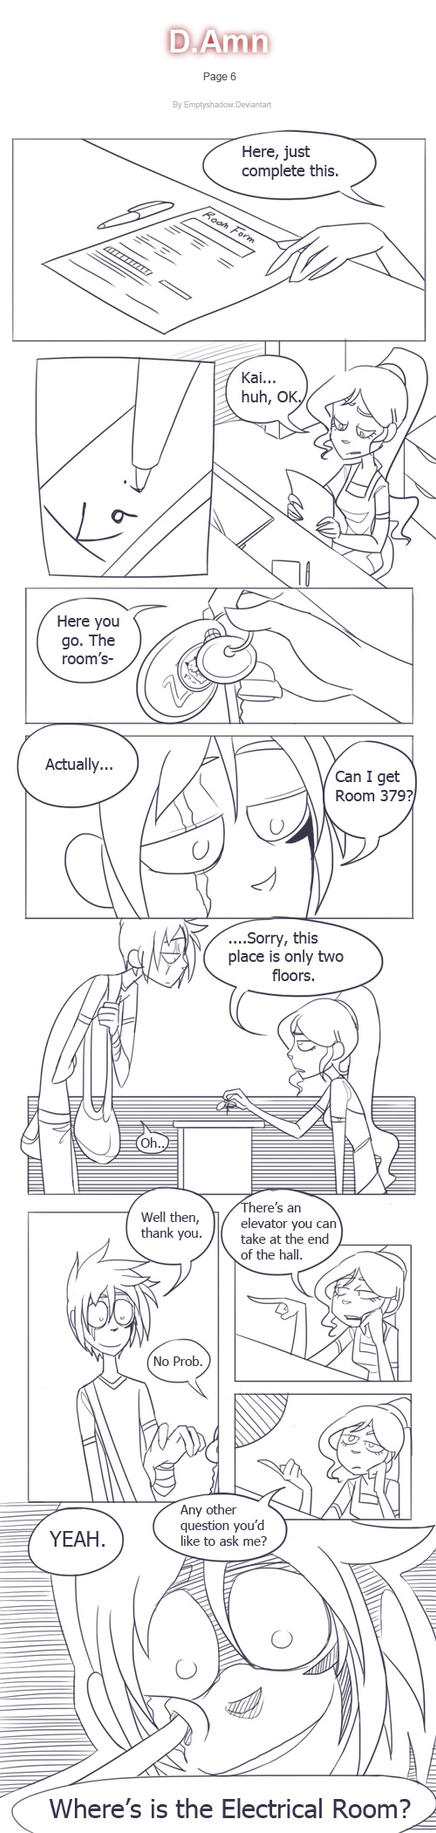 D.Amn (comic) - page 6 by EmptyShadow